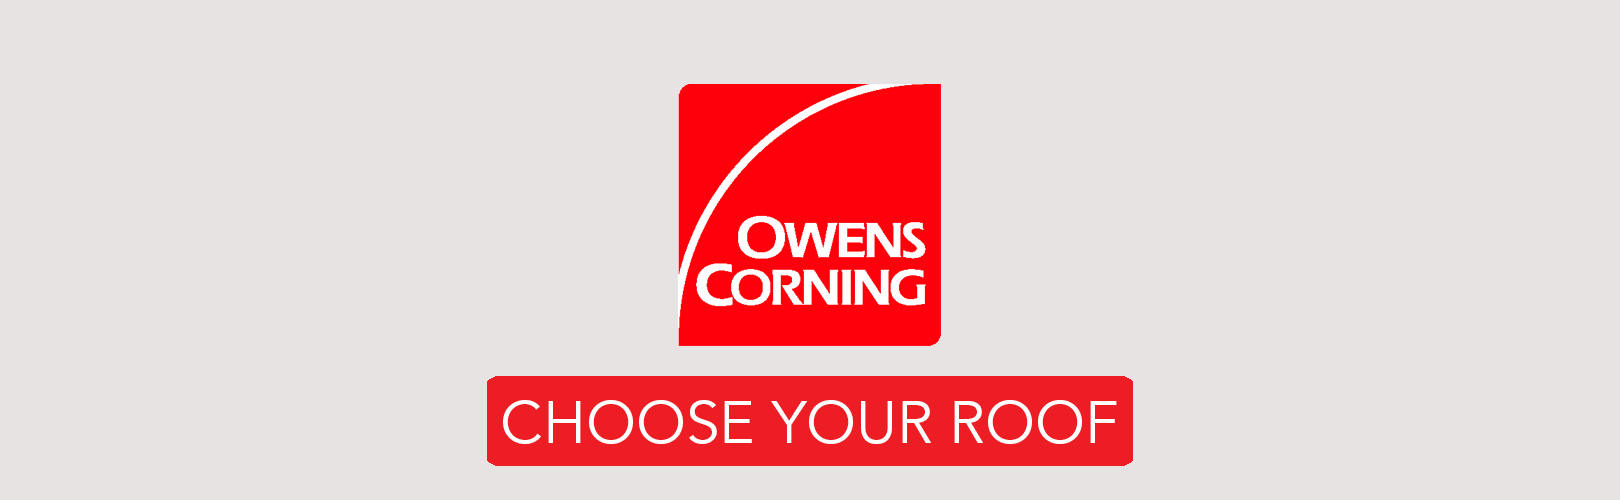 Owens Corning Roofing New London New Haven Hartford